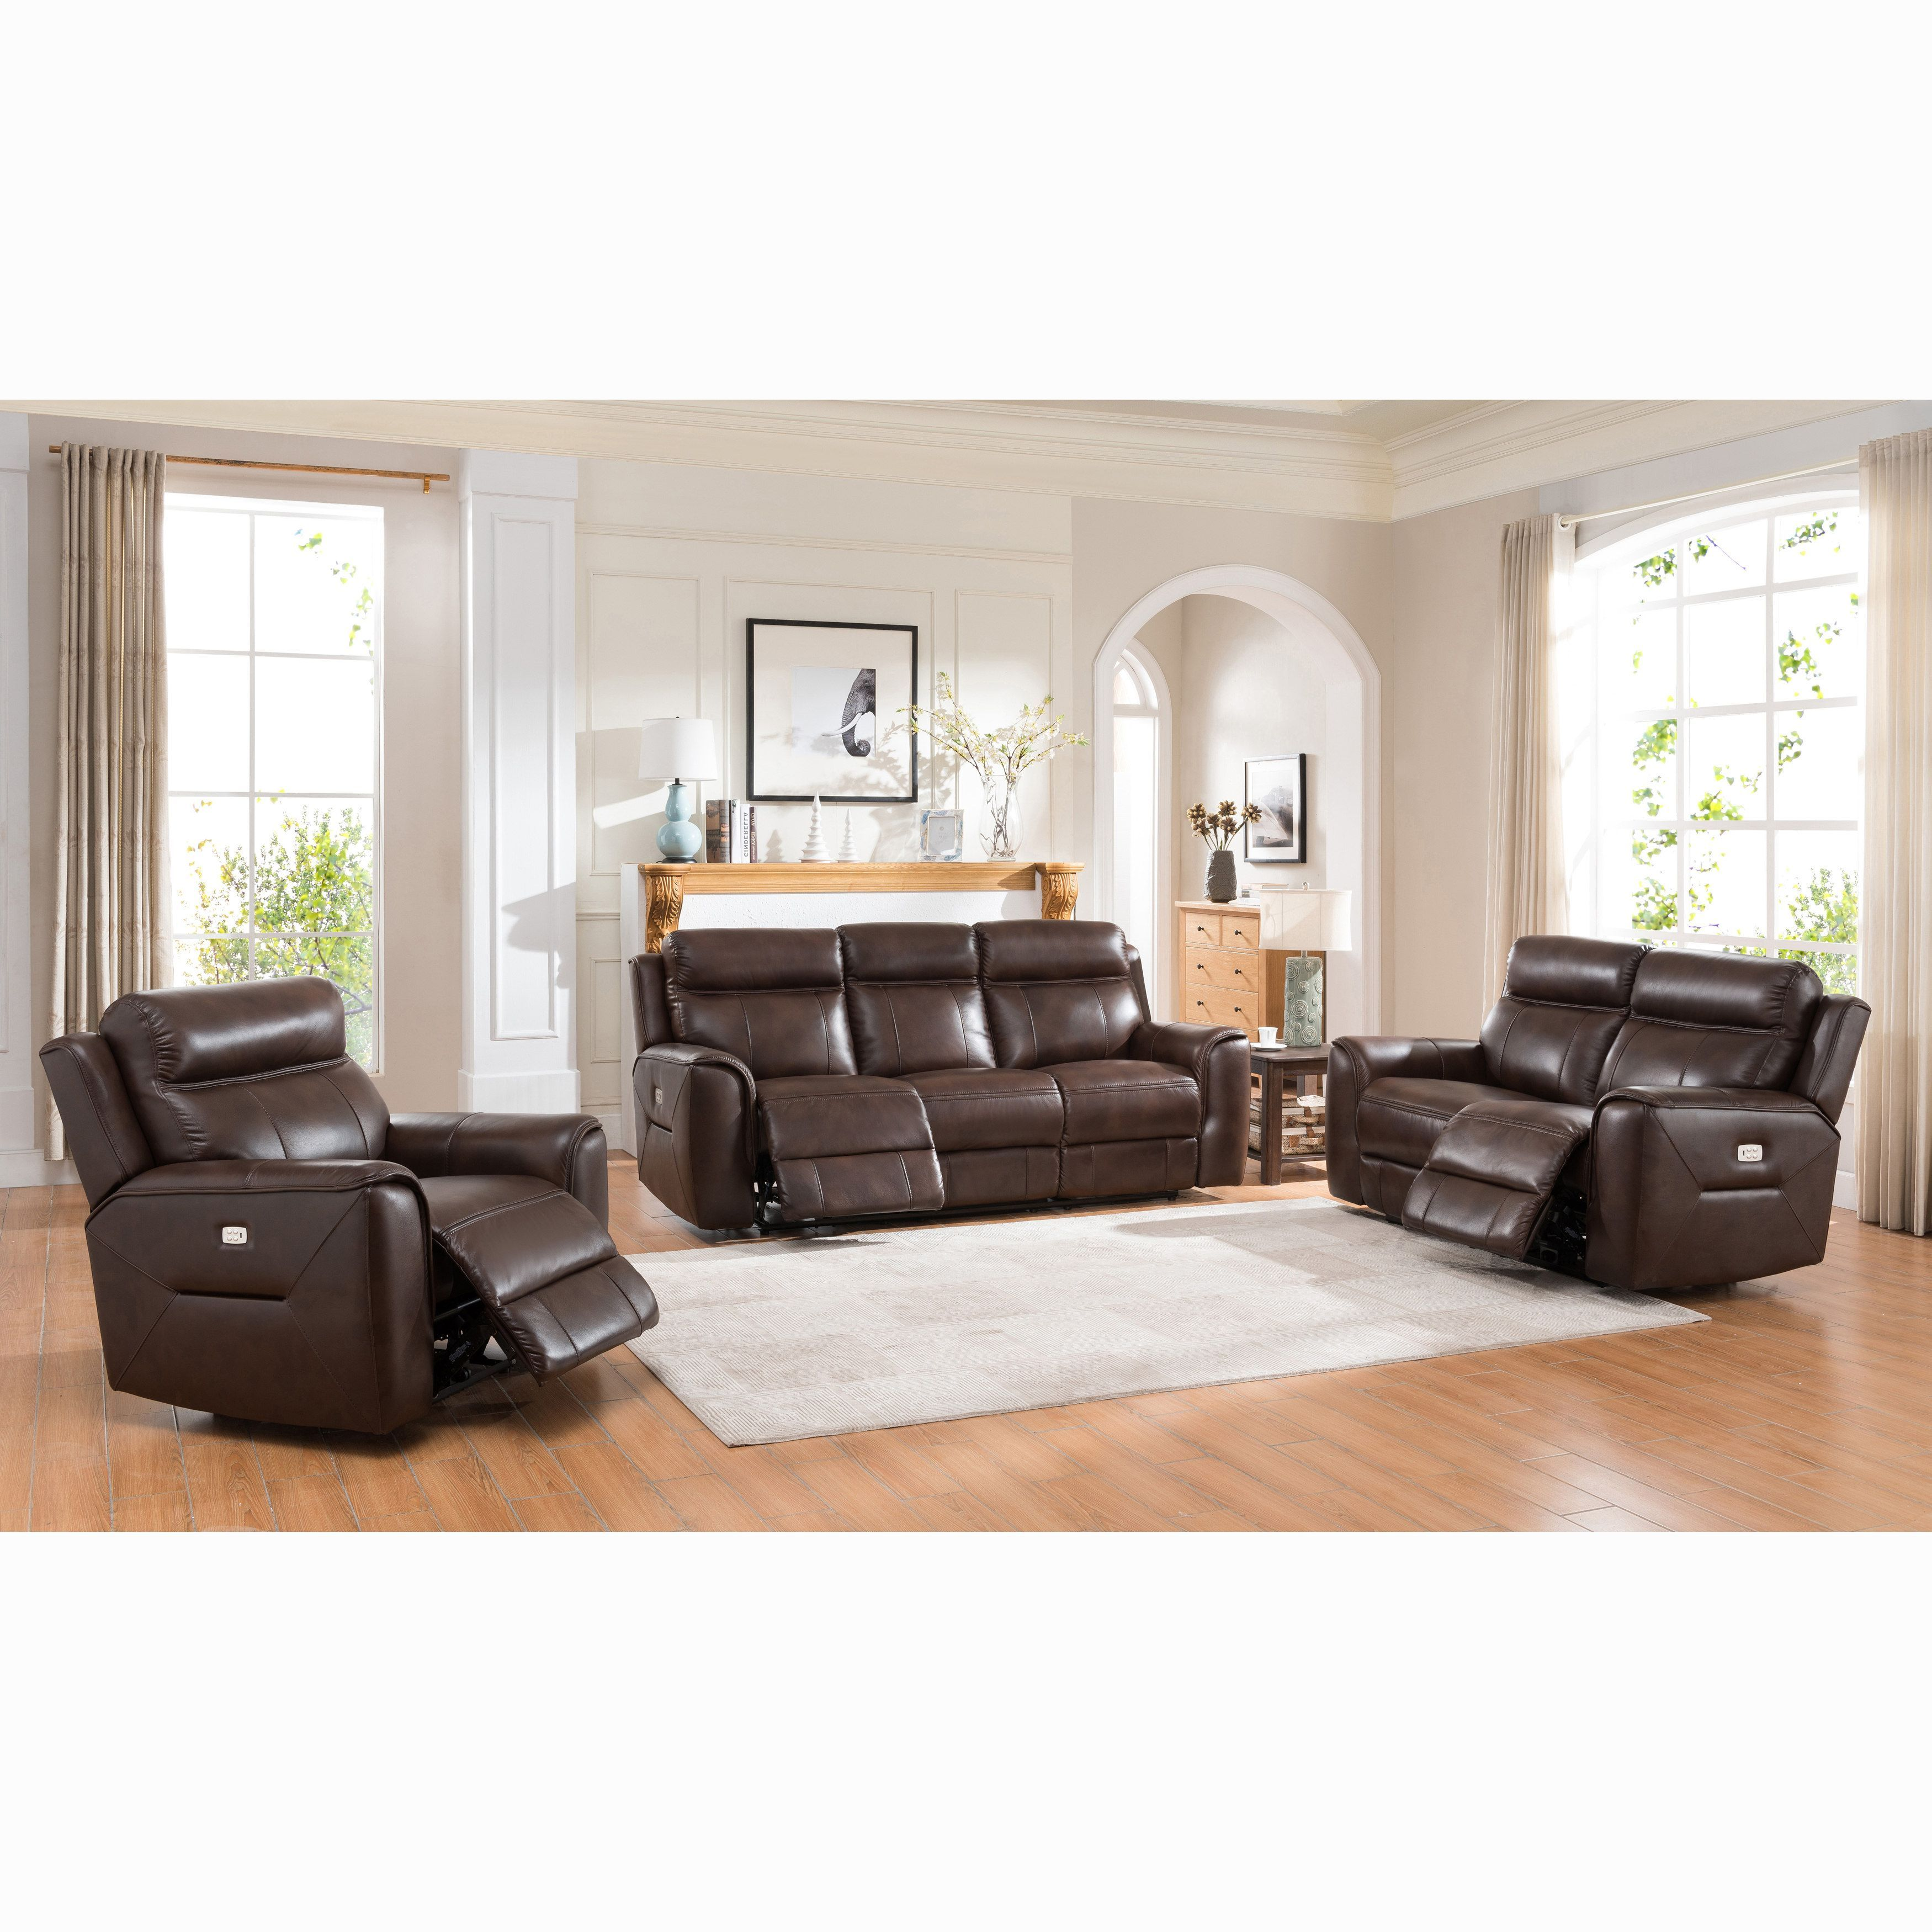 Beau Taft Brown Top Grain Leather Power Reclining Sofa, Loveseat And Chair